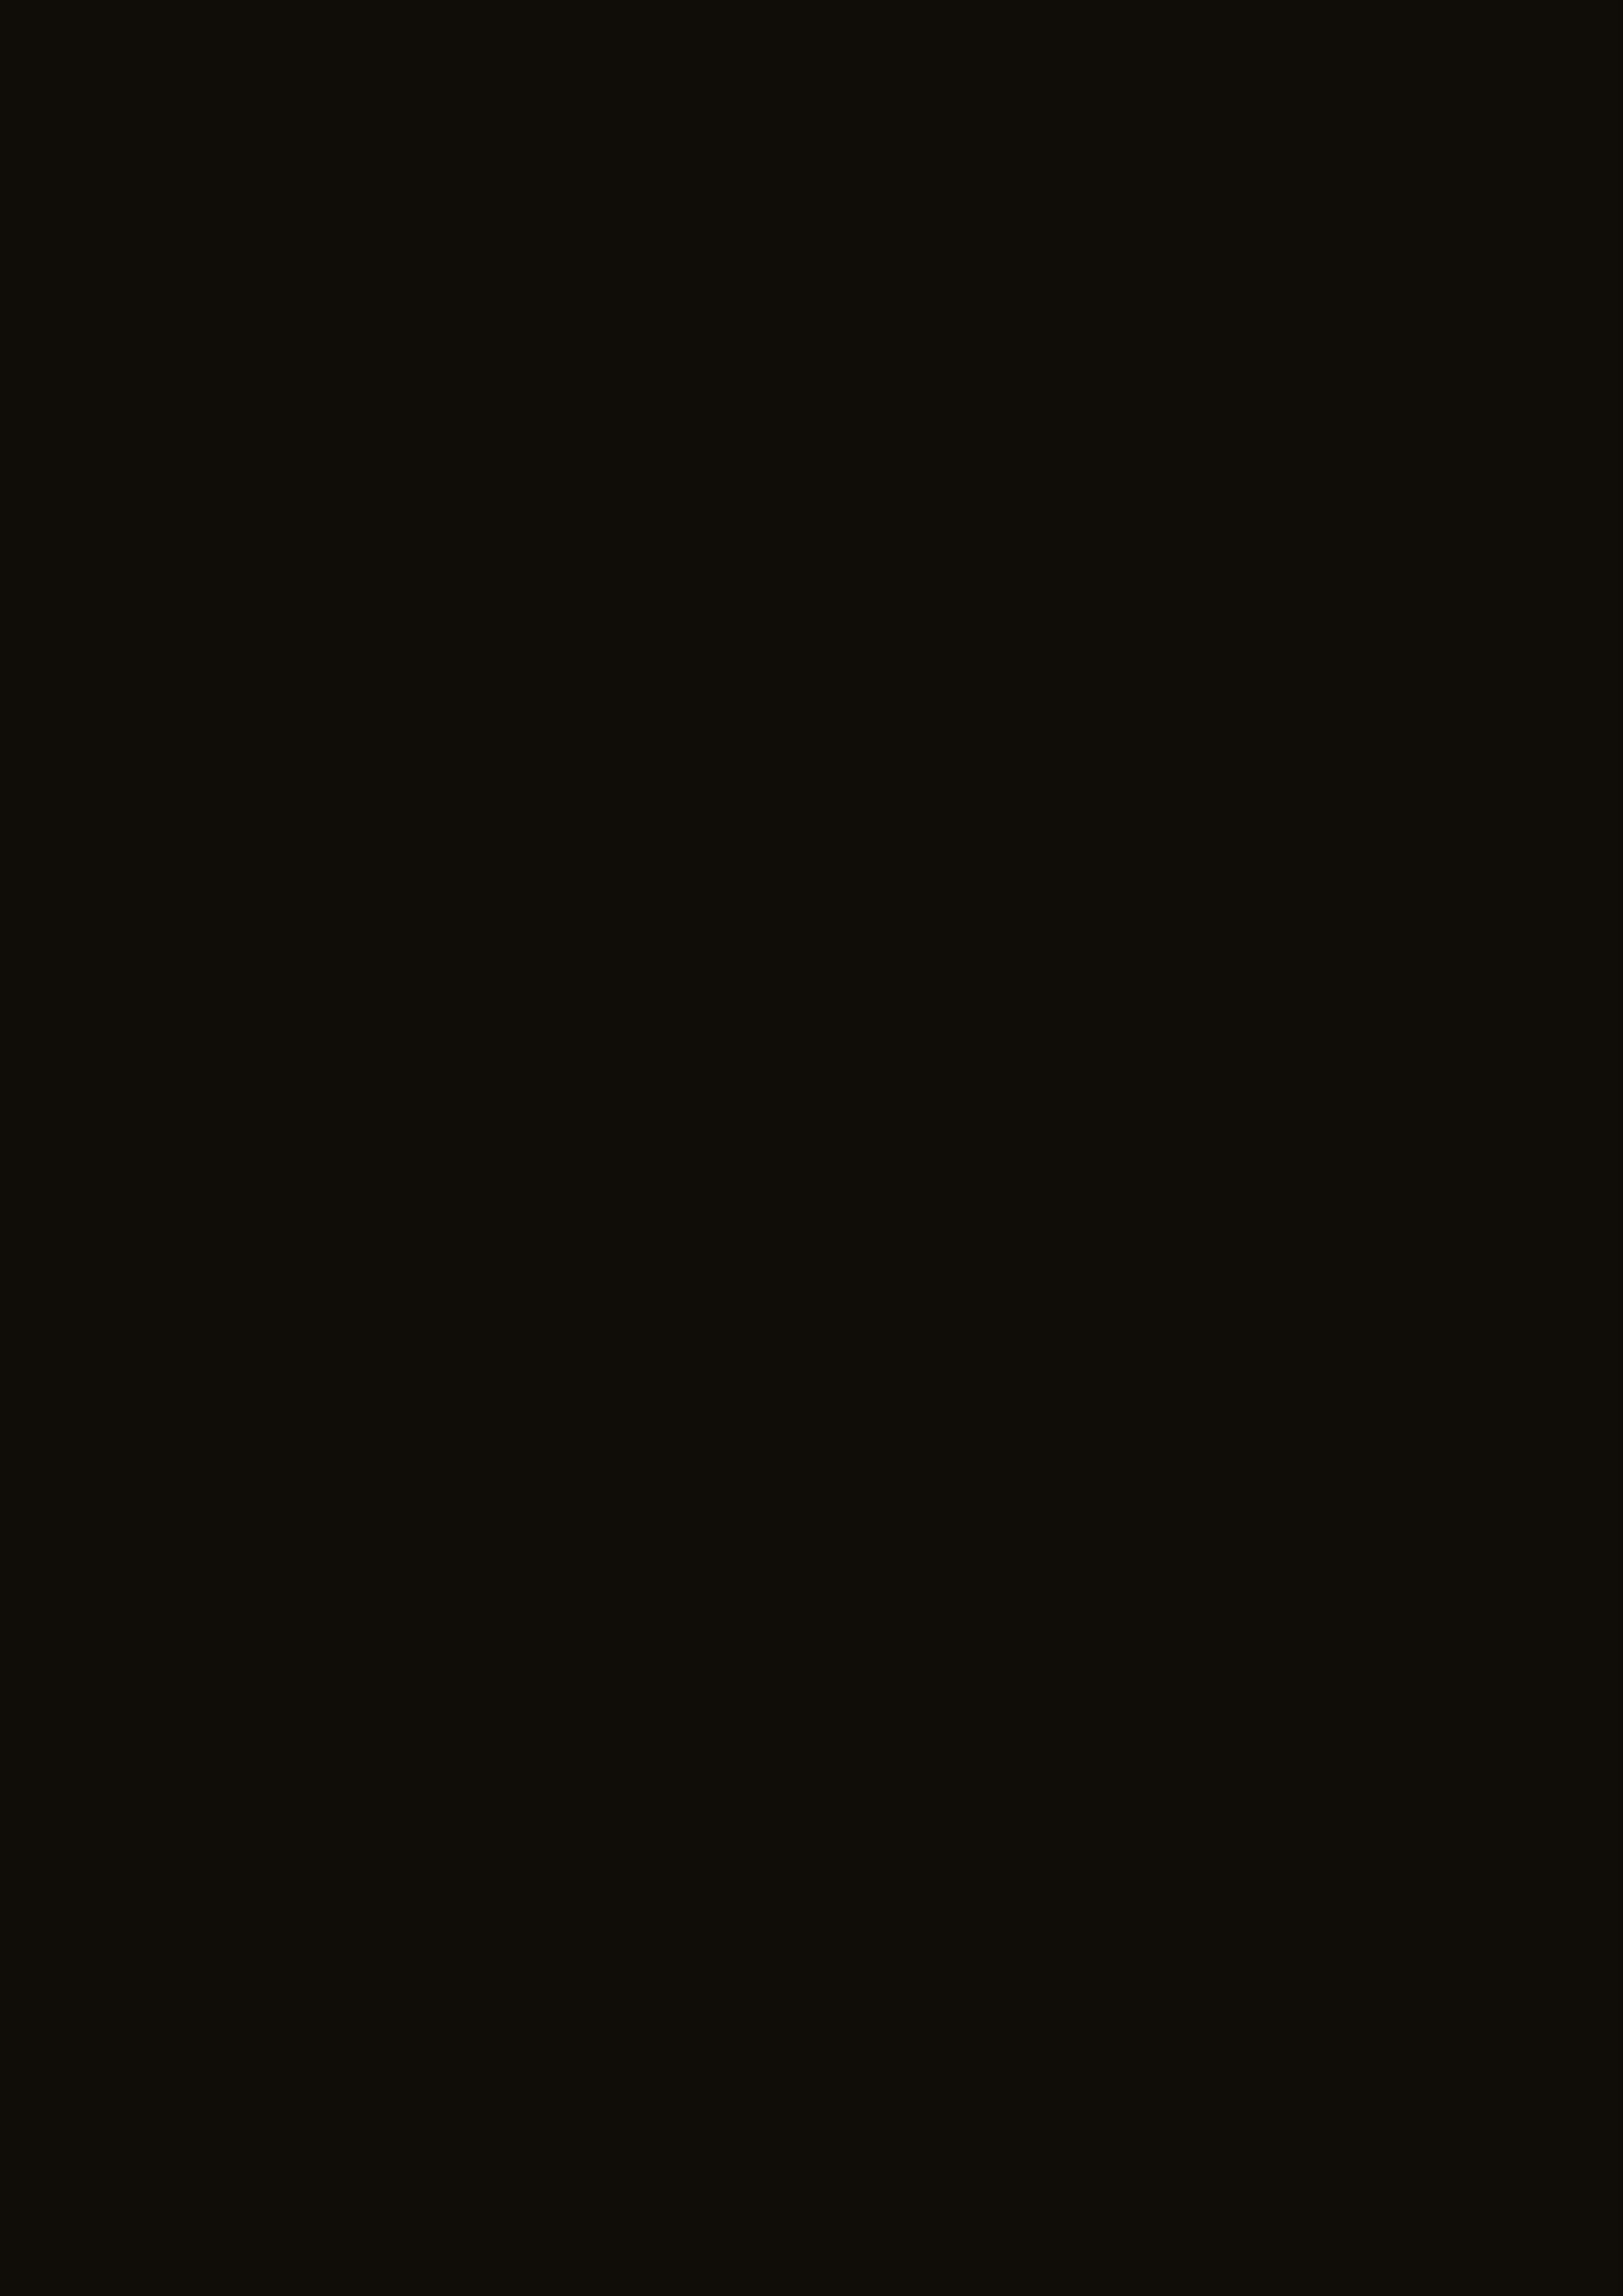 2480x3508 Smoky Black Solid Color Background